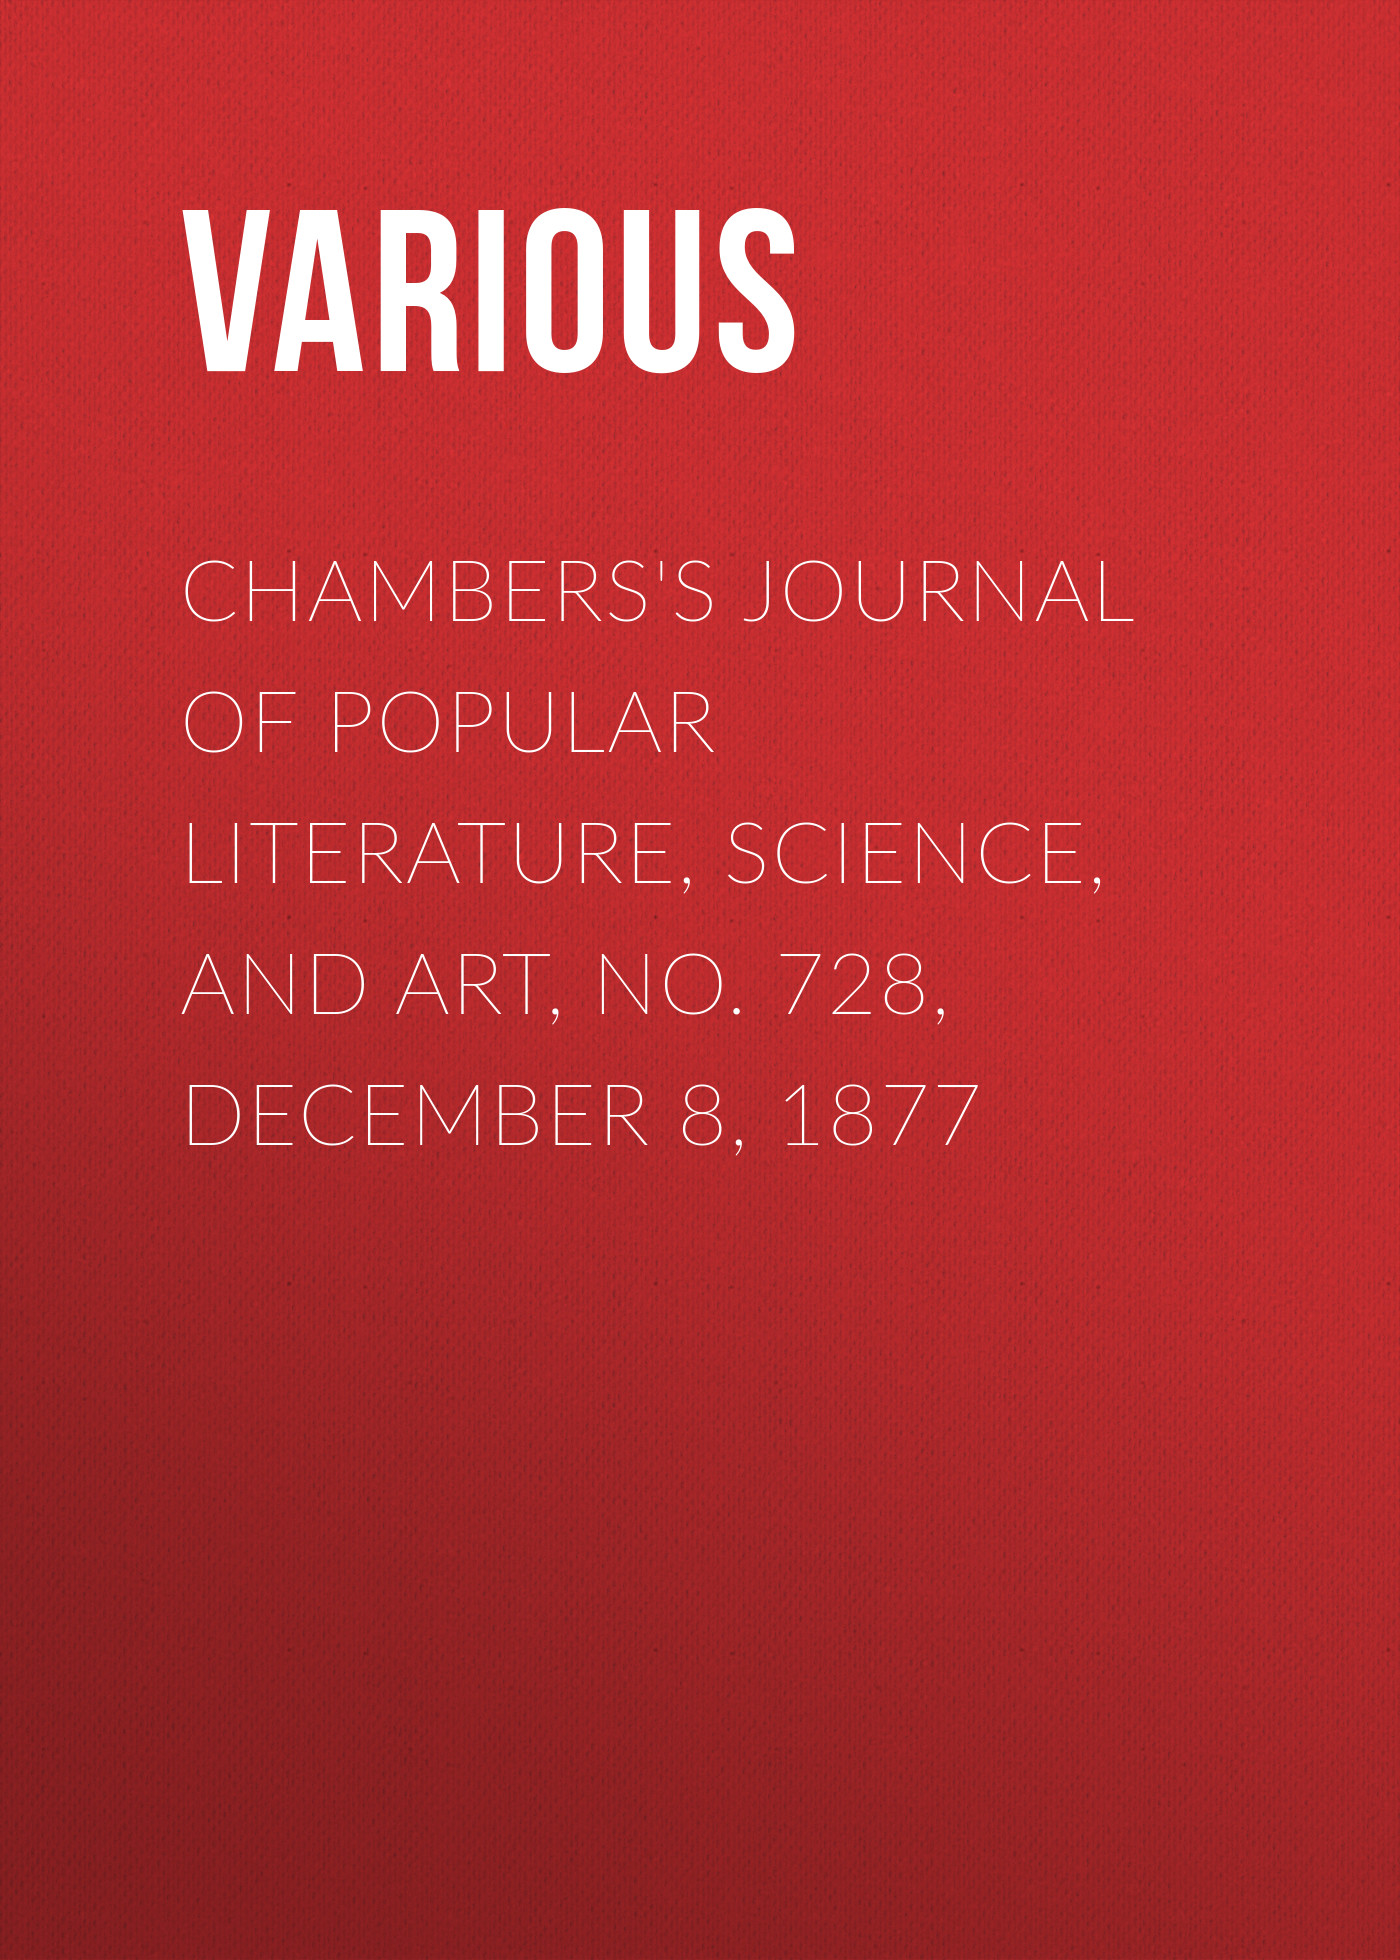 Various Chambers's Journal of Popular Literature, Science, and Art, No. 728, December 8, 1877 various chambers s journal of popular literature science and art no 707 july 14 1877